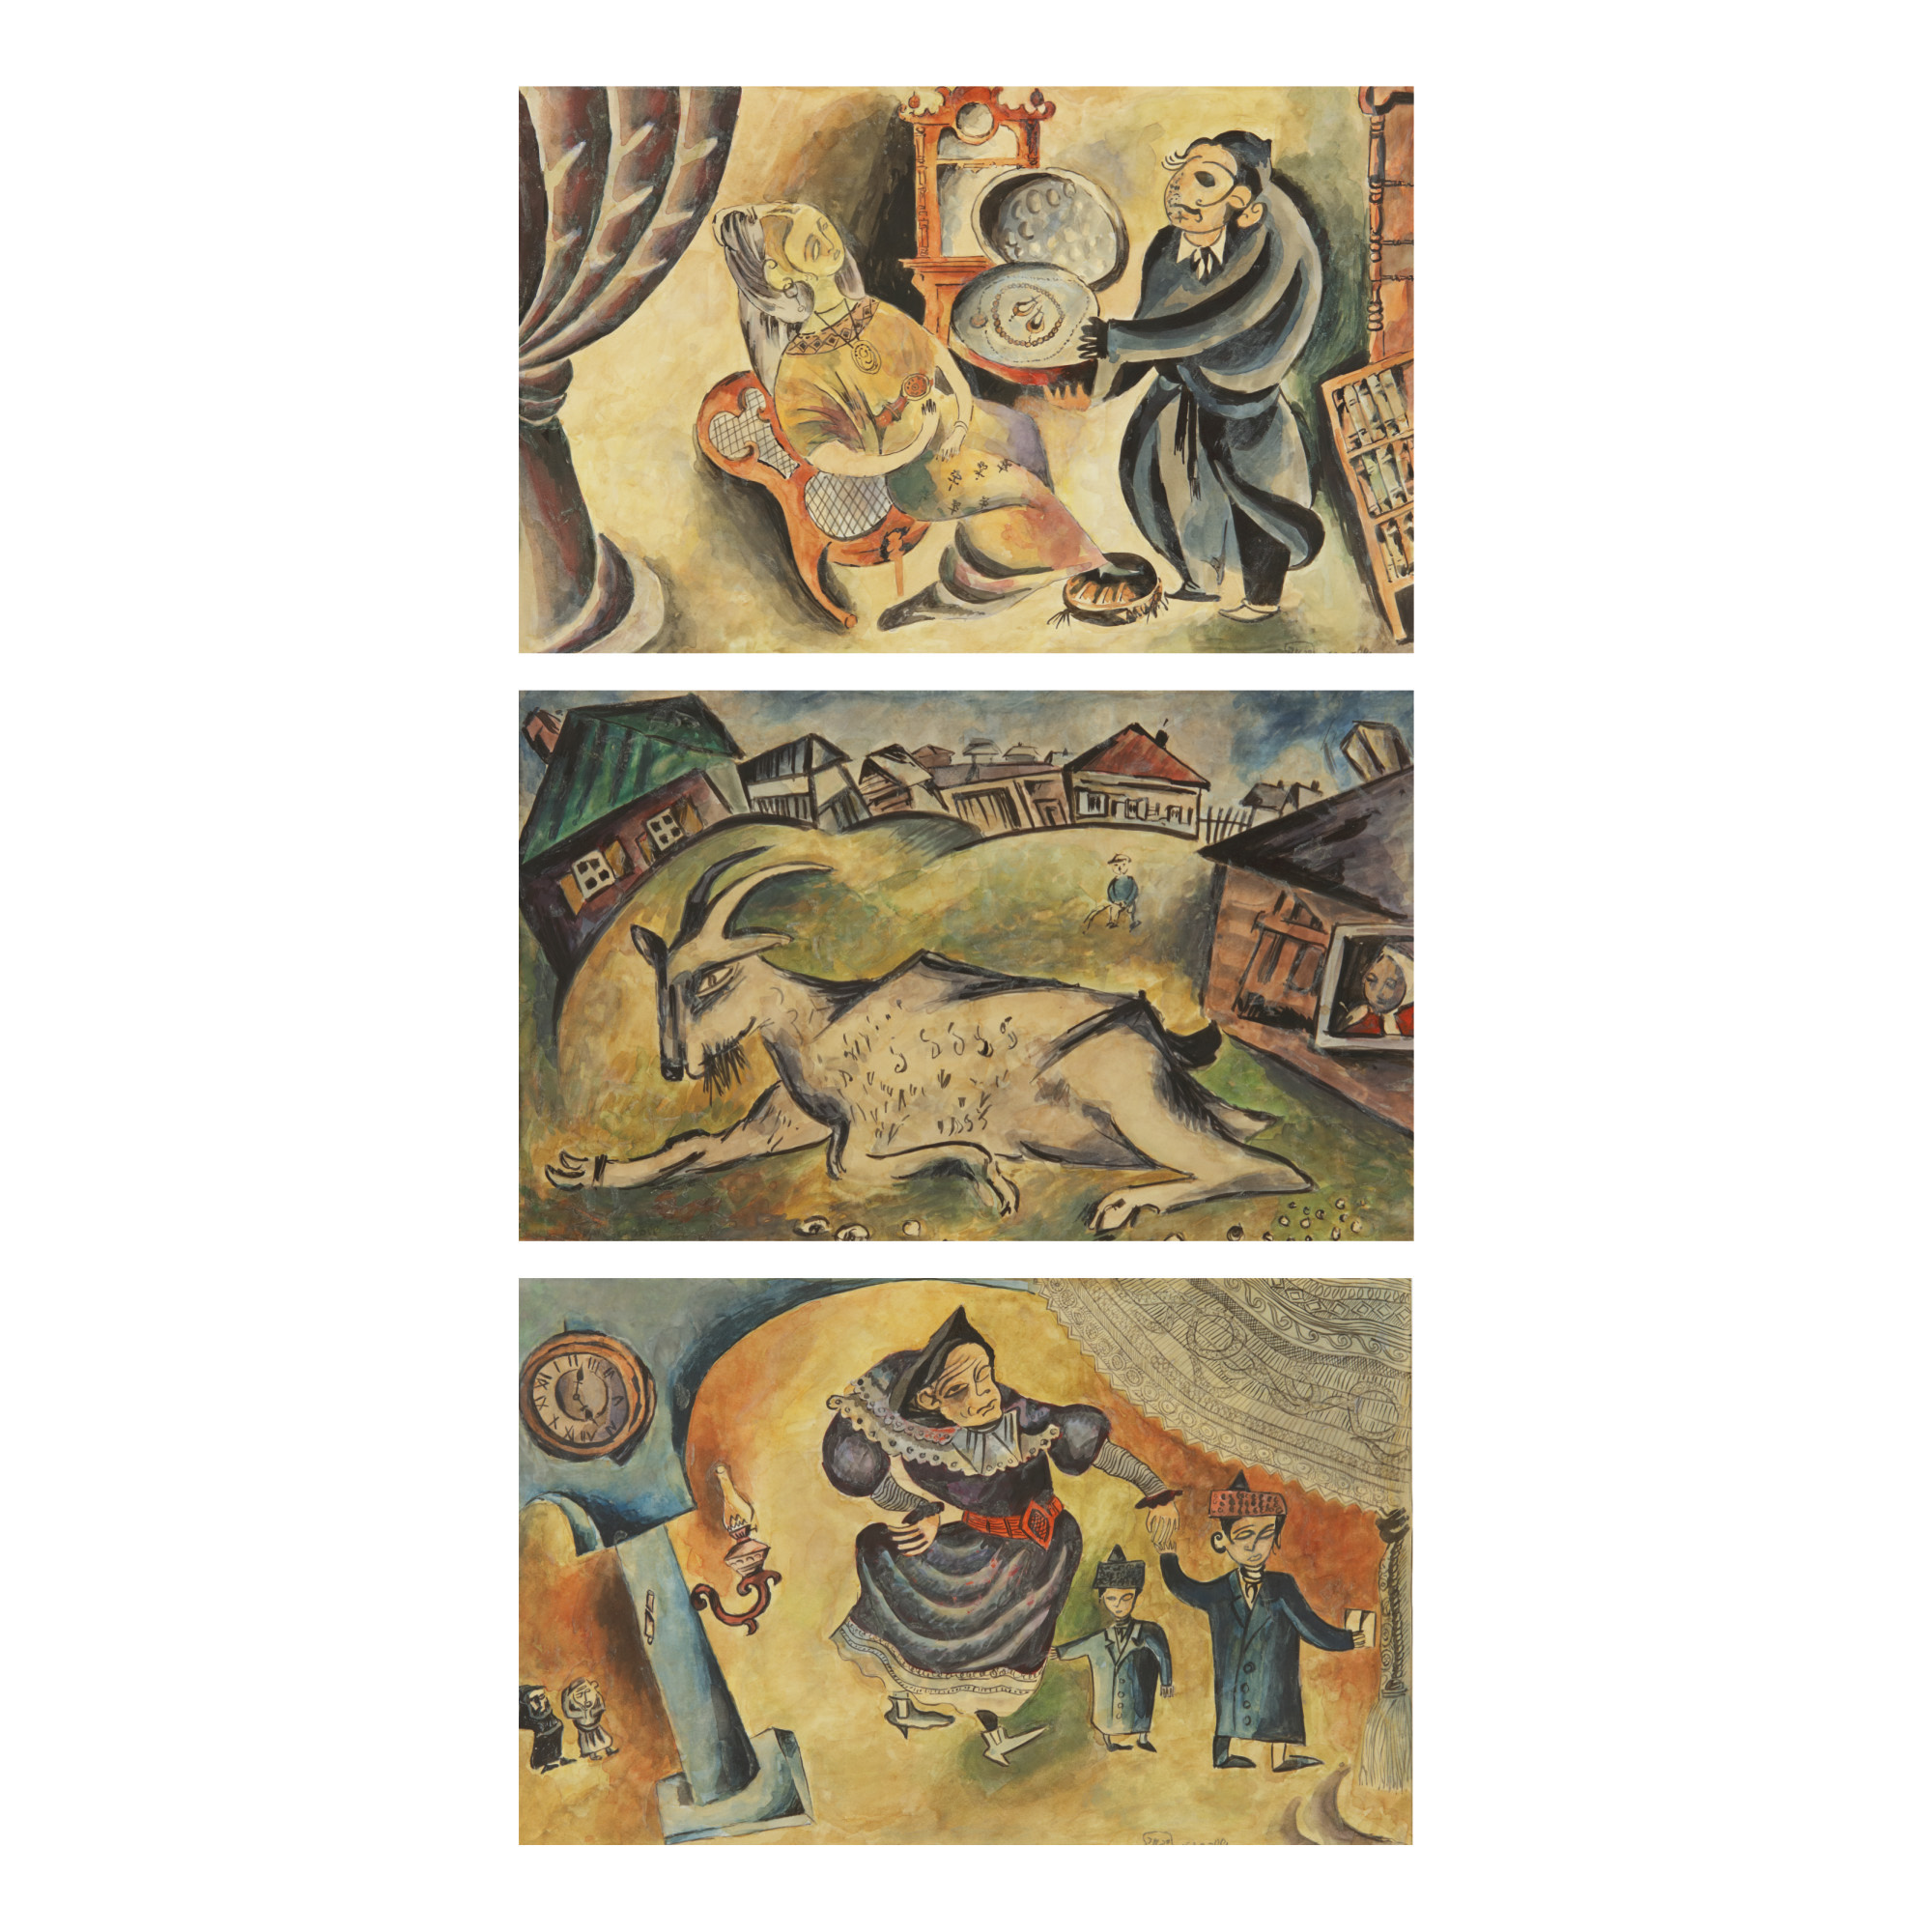 ISSACHAR RYBACK | OFFERING A PRESENT, A GOAT AND THE RABBI'S WIFE: 3 PAINTINGS